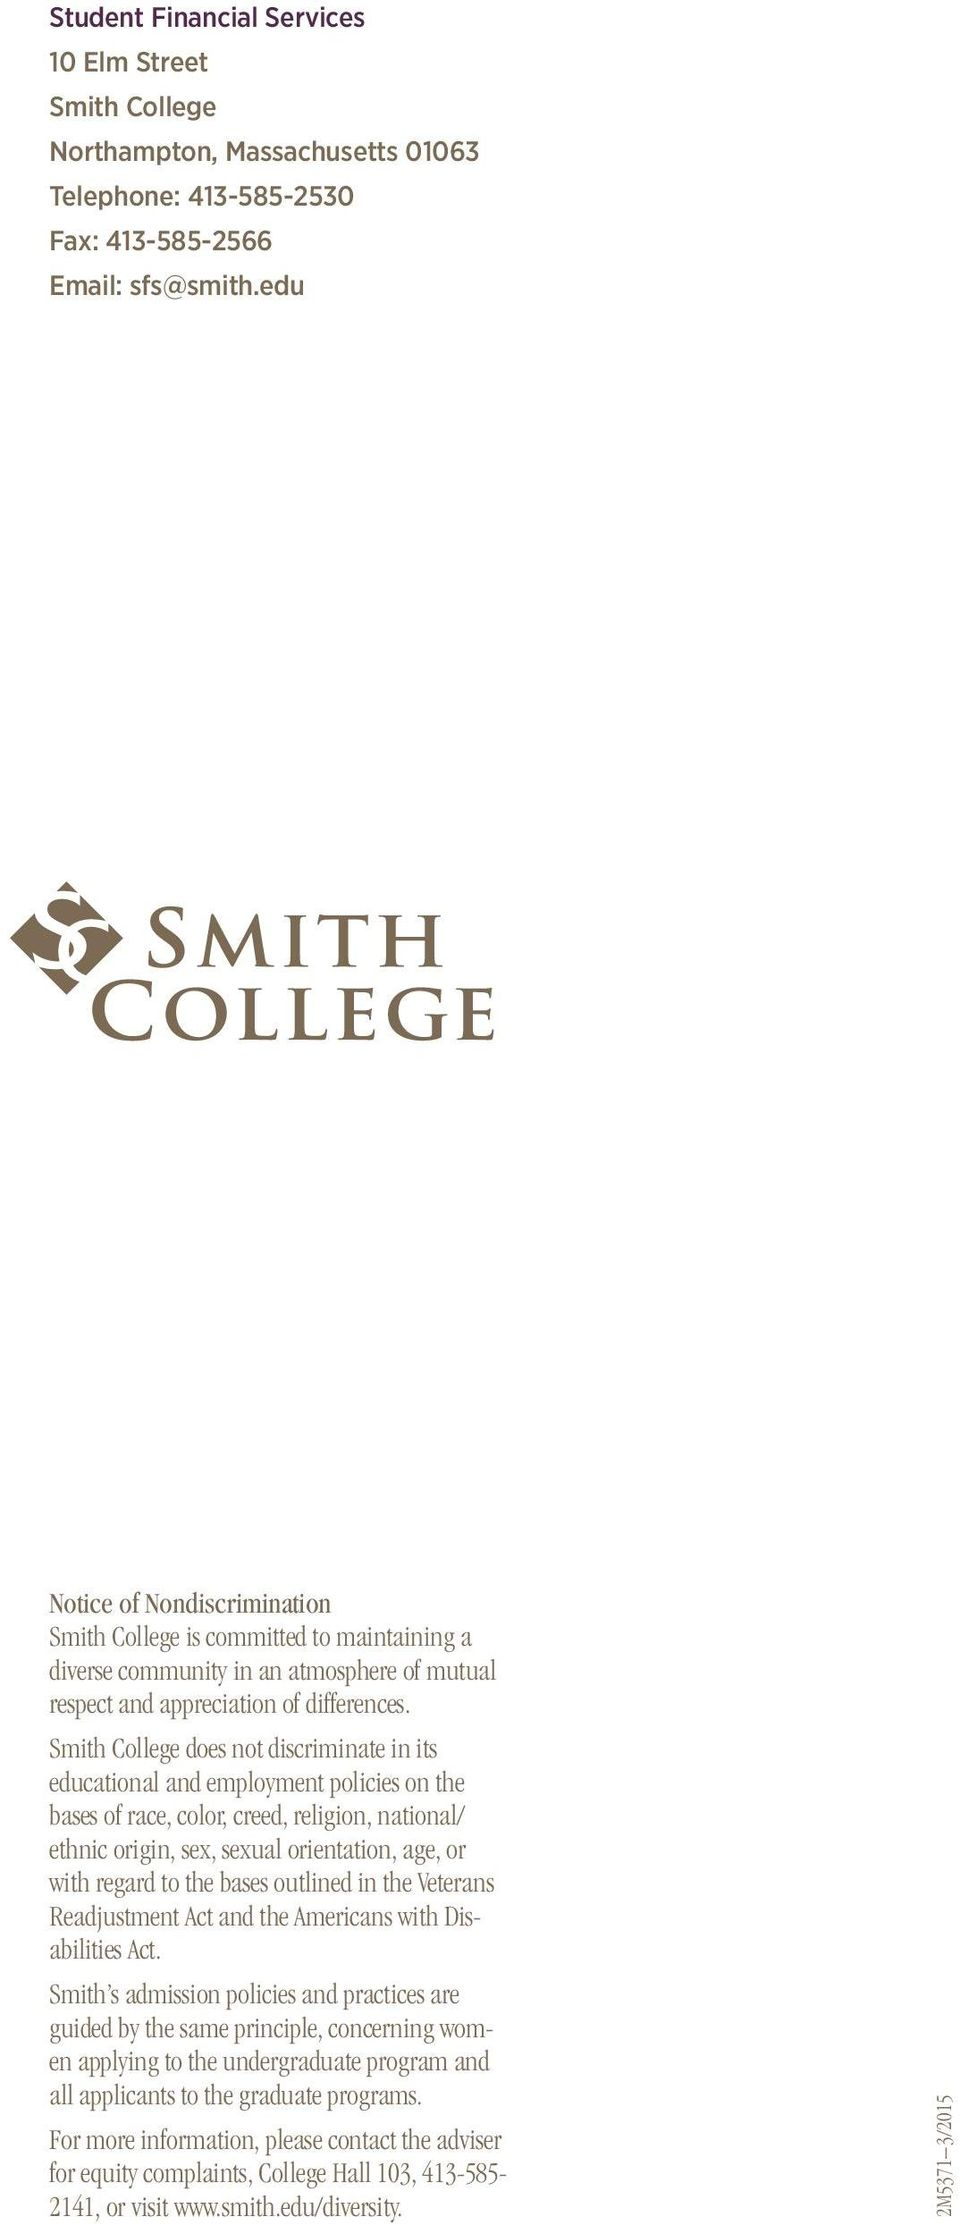 Smith College does not discriminate in its educational and employment policies on the bases of race, color, creed, religion, national/ ethnic origin, sex, sexual orientation, age, or with regard to